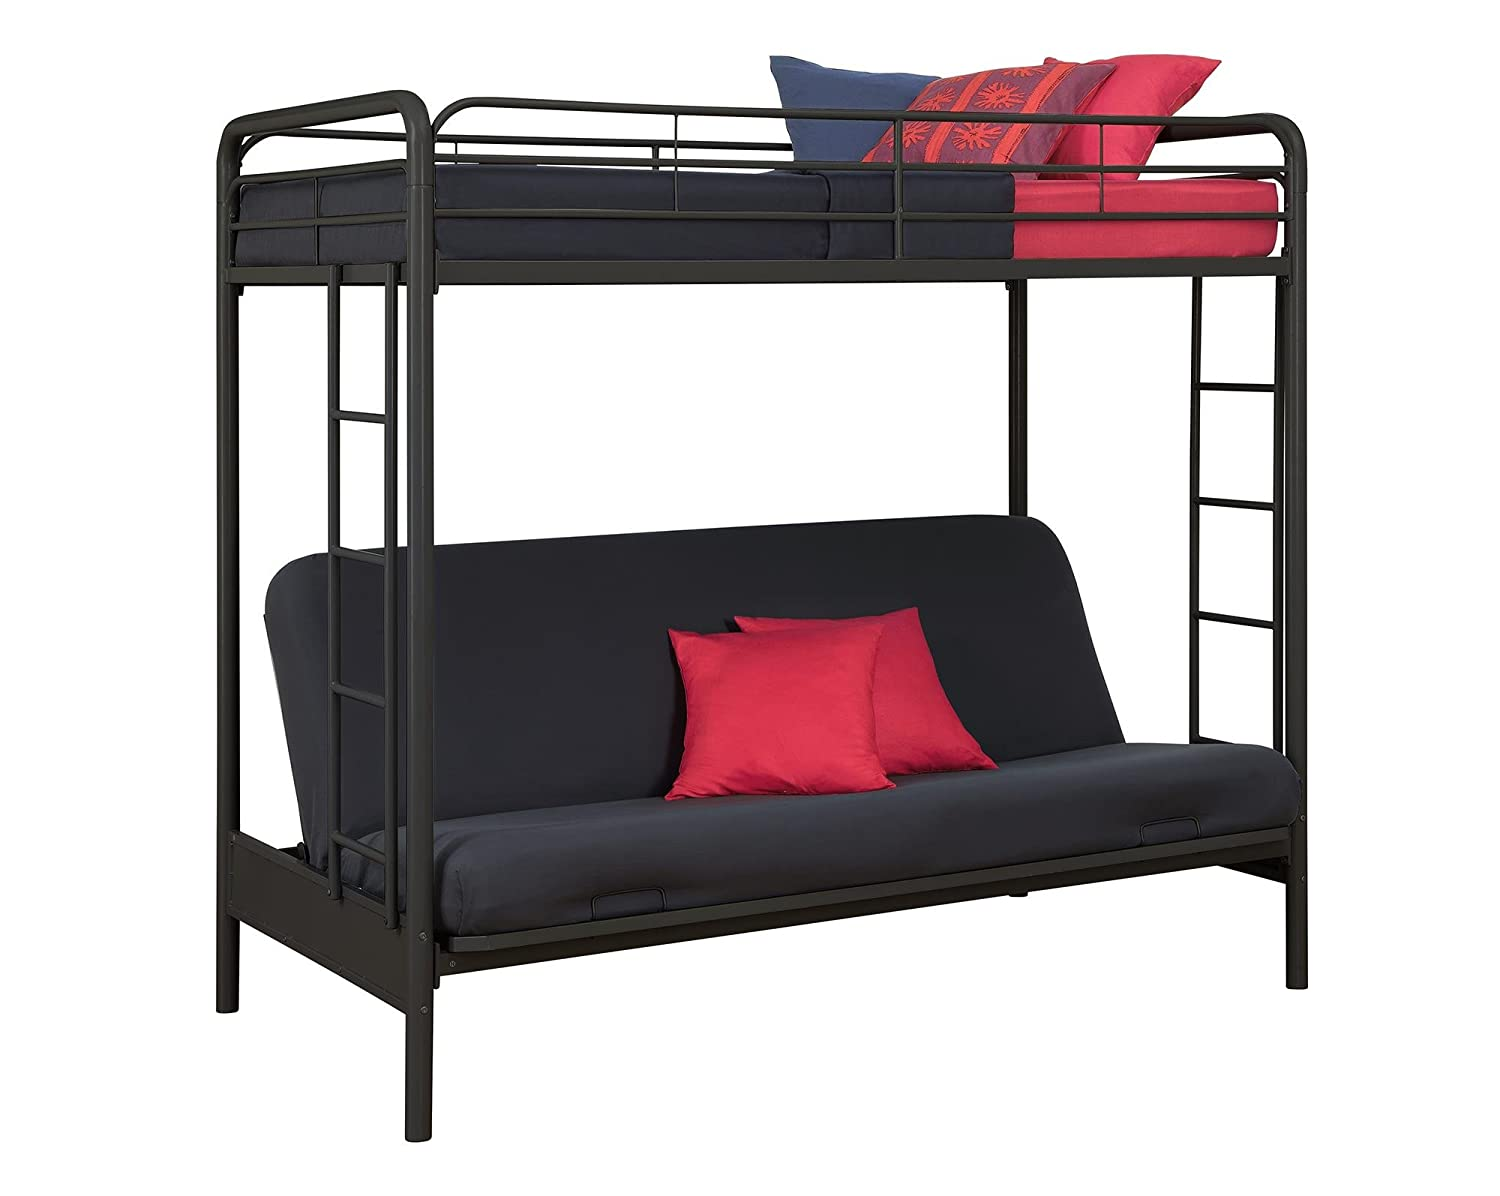 Convertible couch bunk bed - Amazon Com Dhp Twin Over Futon Convertible Couch And Bed With Metal Frame And Ladder Black Kitchen Dining